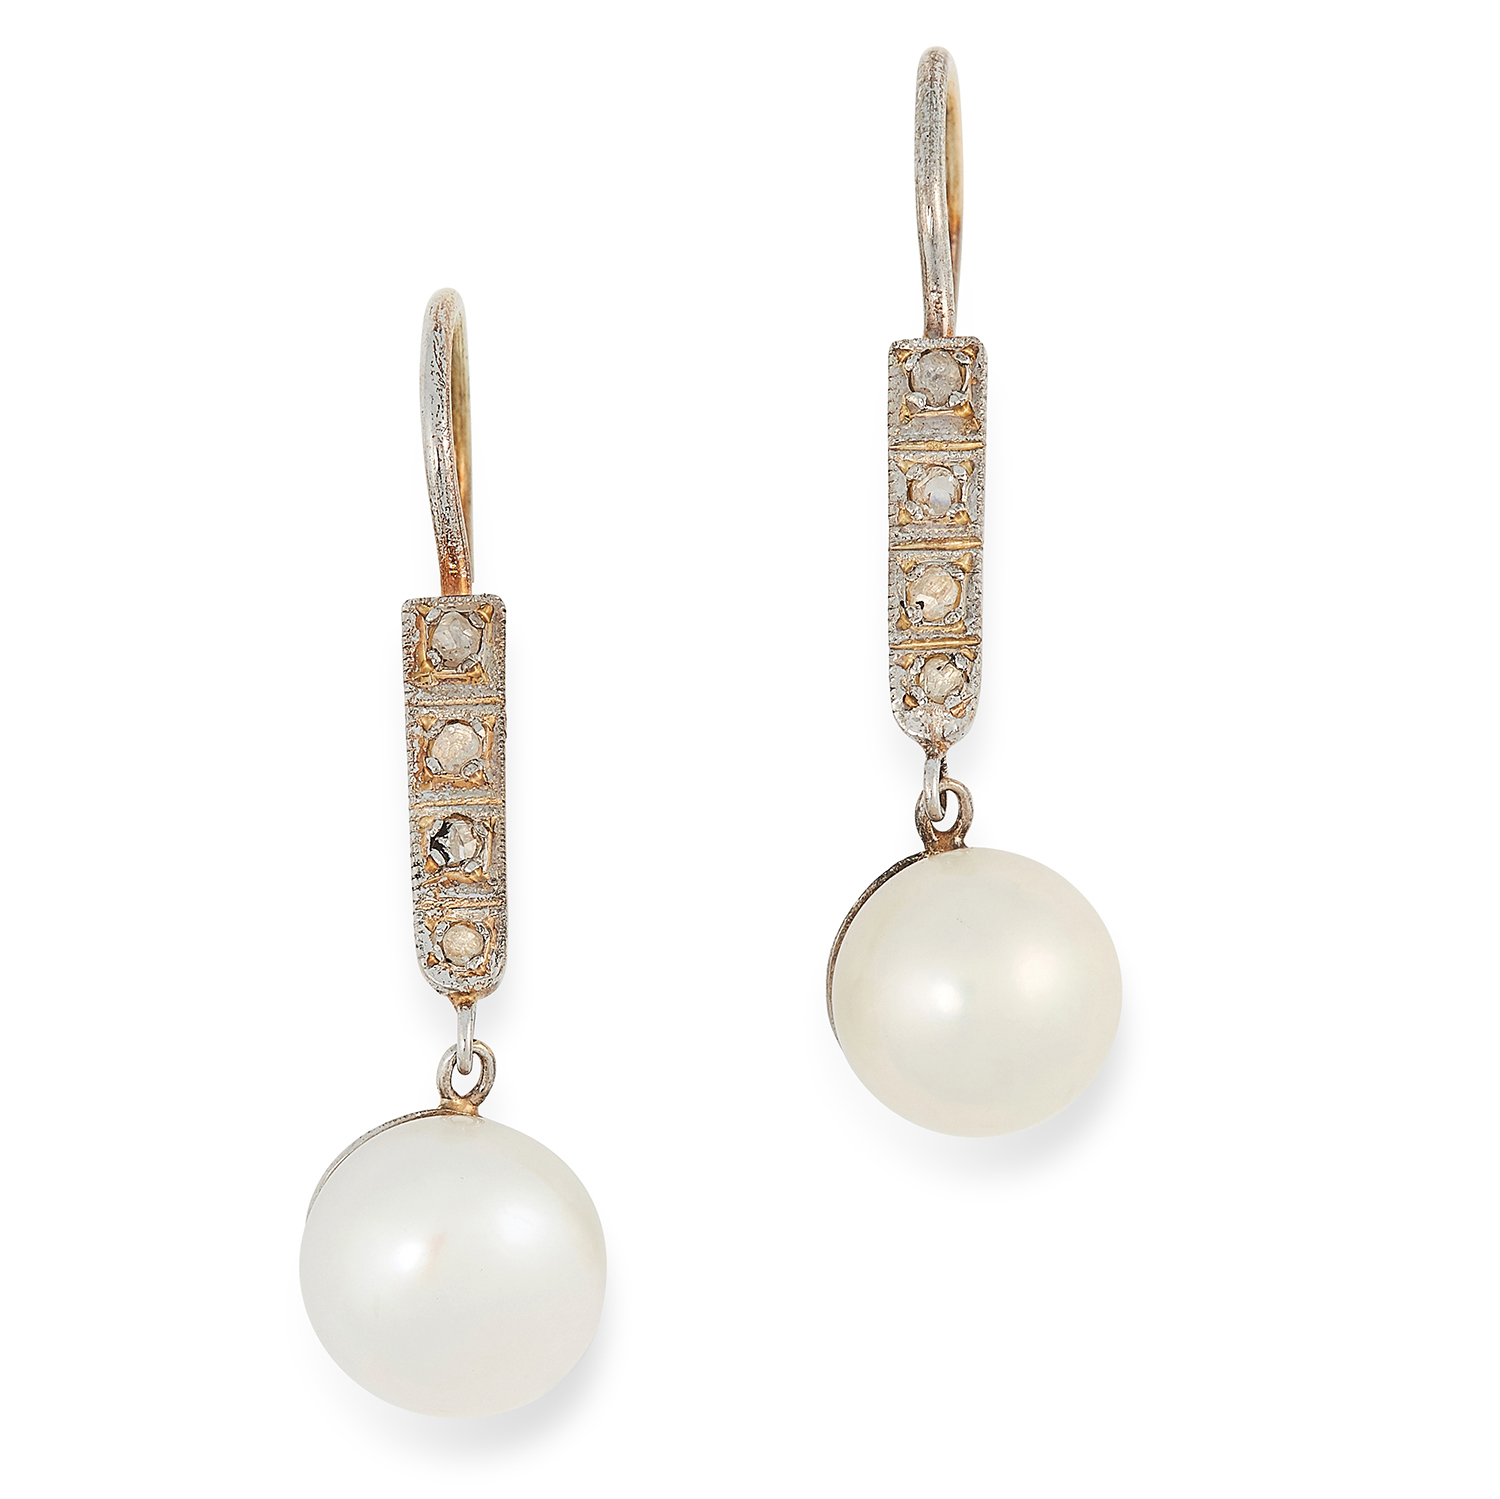 PEARL AND DIAMOND DROP EARRINGS each set with a row of round cut diamonds suspending a pearl drop,